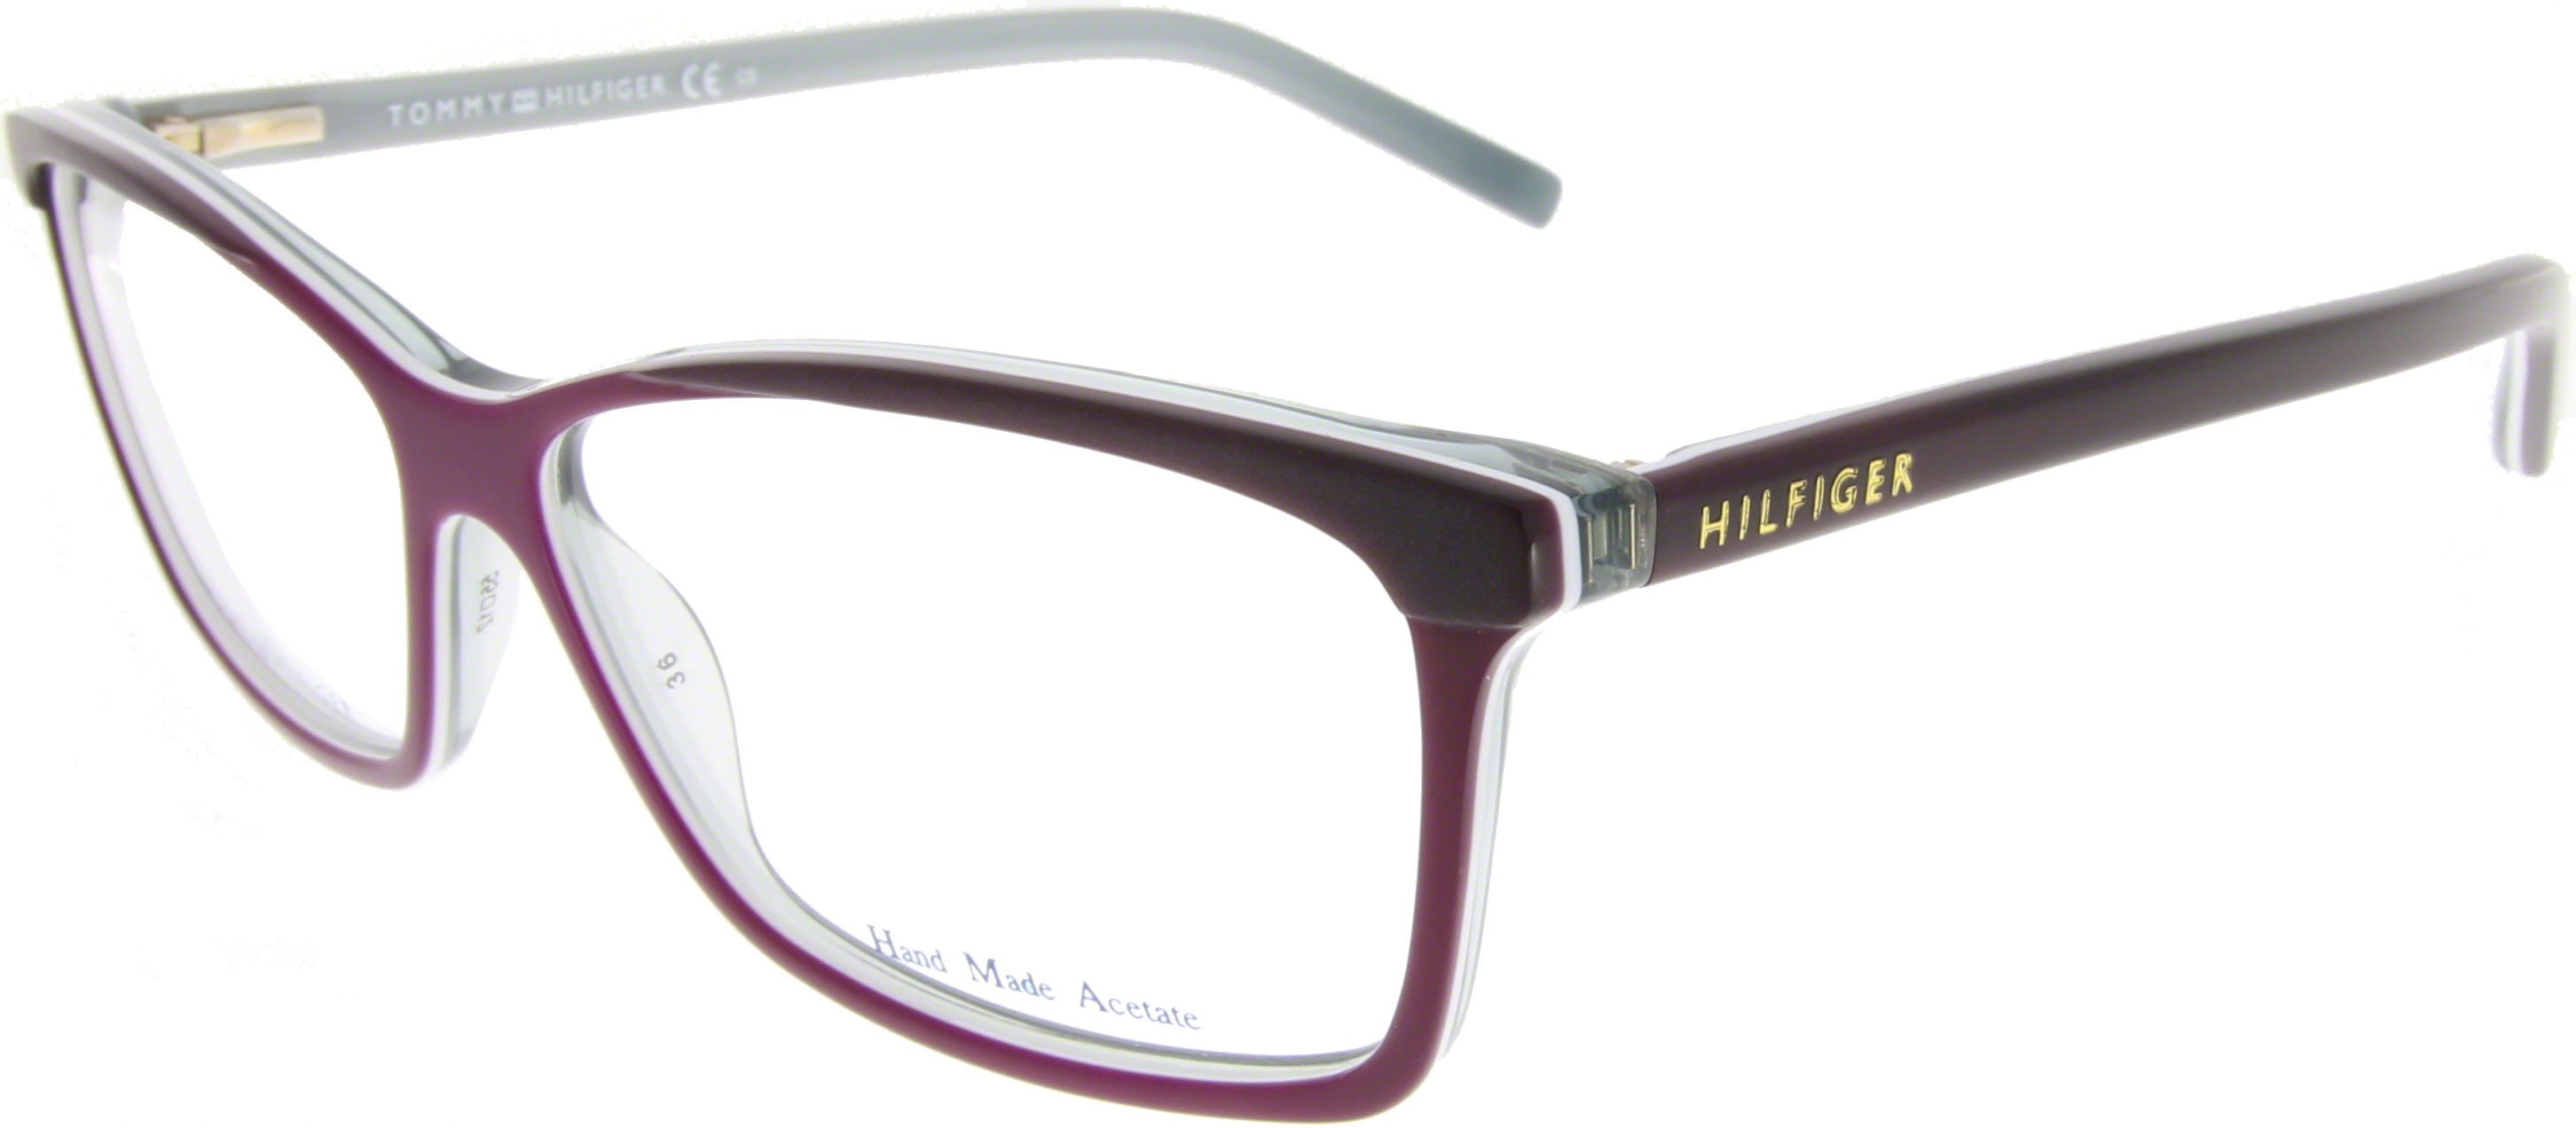 Tommy Hilfiger Brille TH 1235 FSW 55-18 H69pB20V